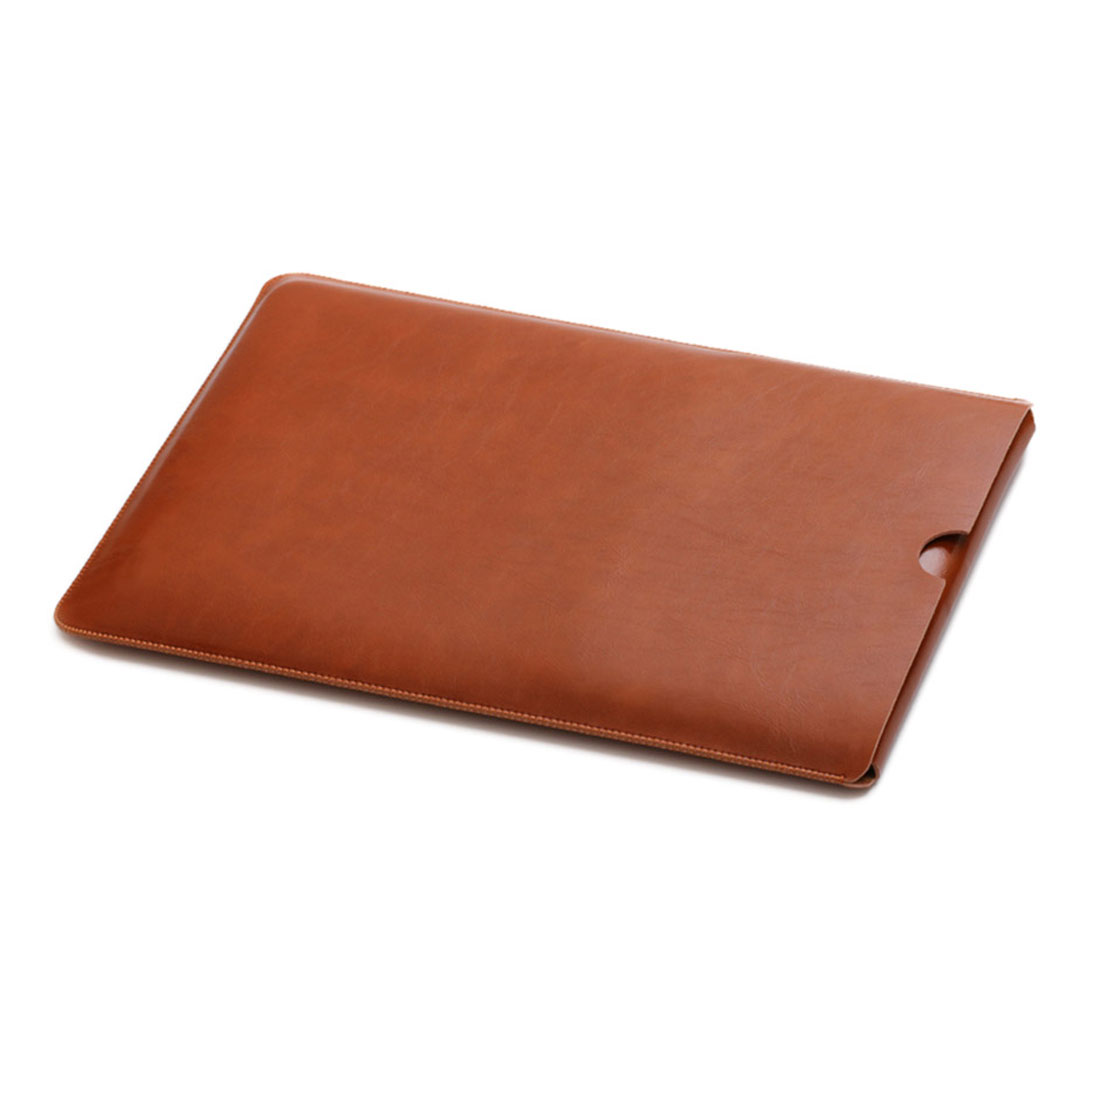 13 Inch Laptop Sleeve Case Leather Bag Brown for Macbook ASUS ACER LENOVO Netbook